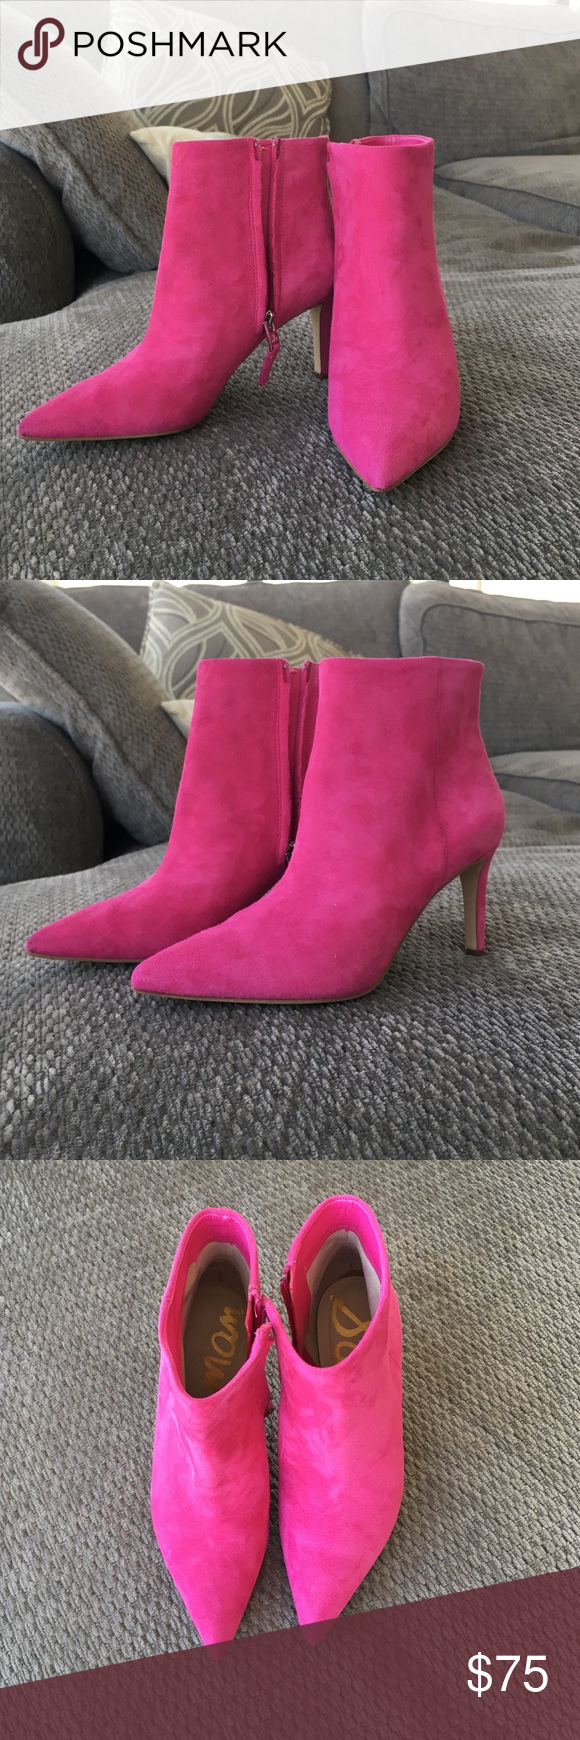 db205399fadd17 Sam Edelman hot pink suede boots - Karen Style Never been worn ...